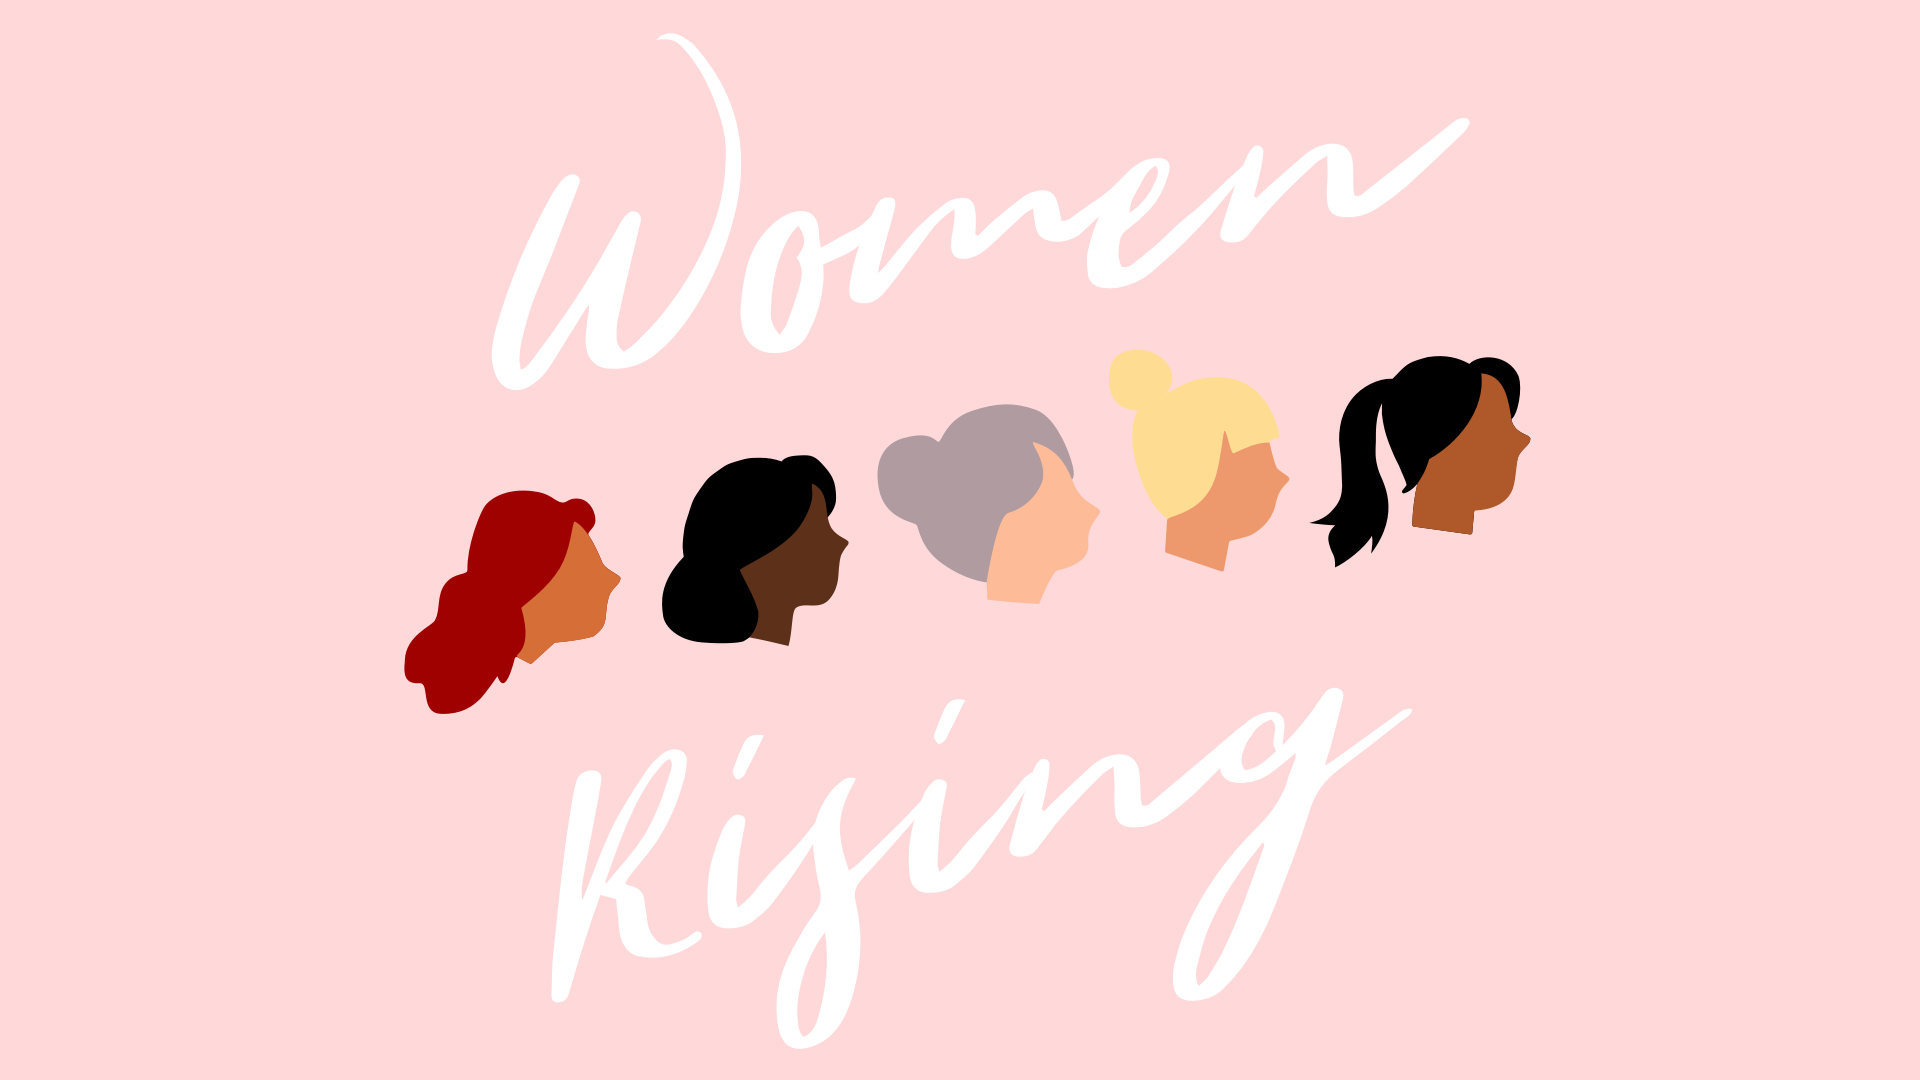 women rising podcast - Women Rising is a fortnightly podcast featuring interviews with a range of badass women changing the world. Check them out on iTunes or spotify.